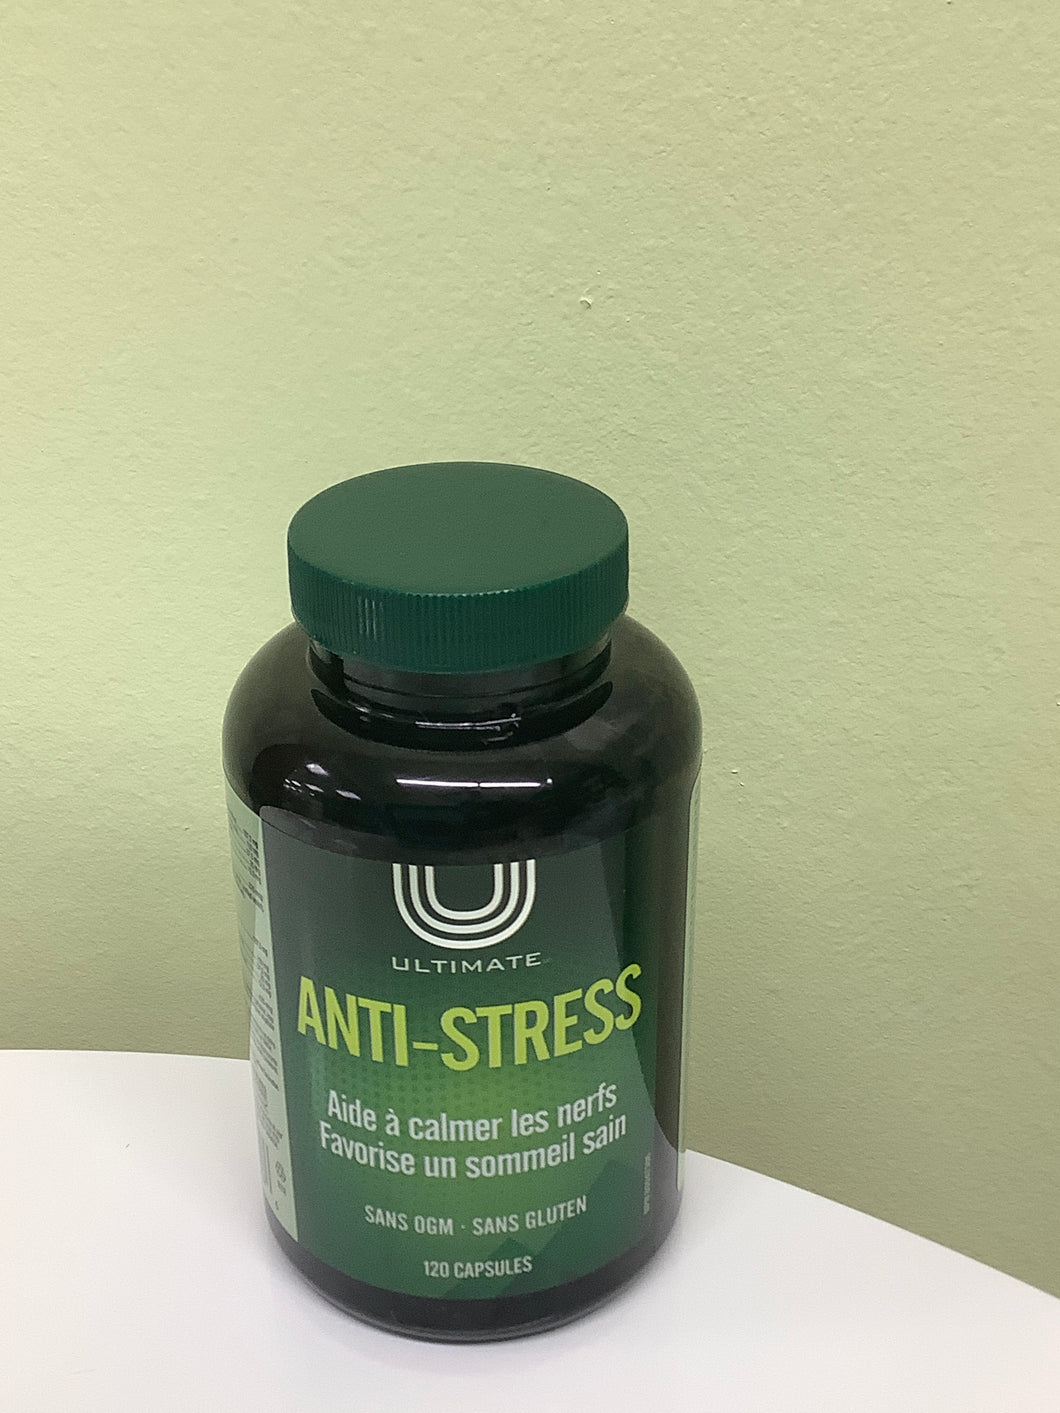 Assured Natural Ultimate Anti-Stress